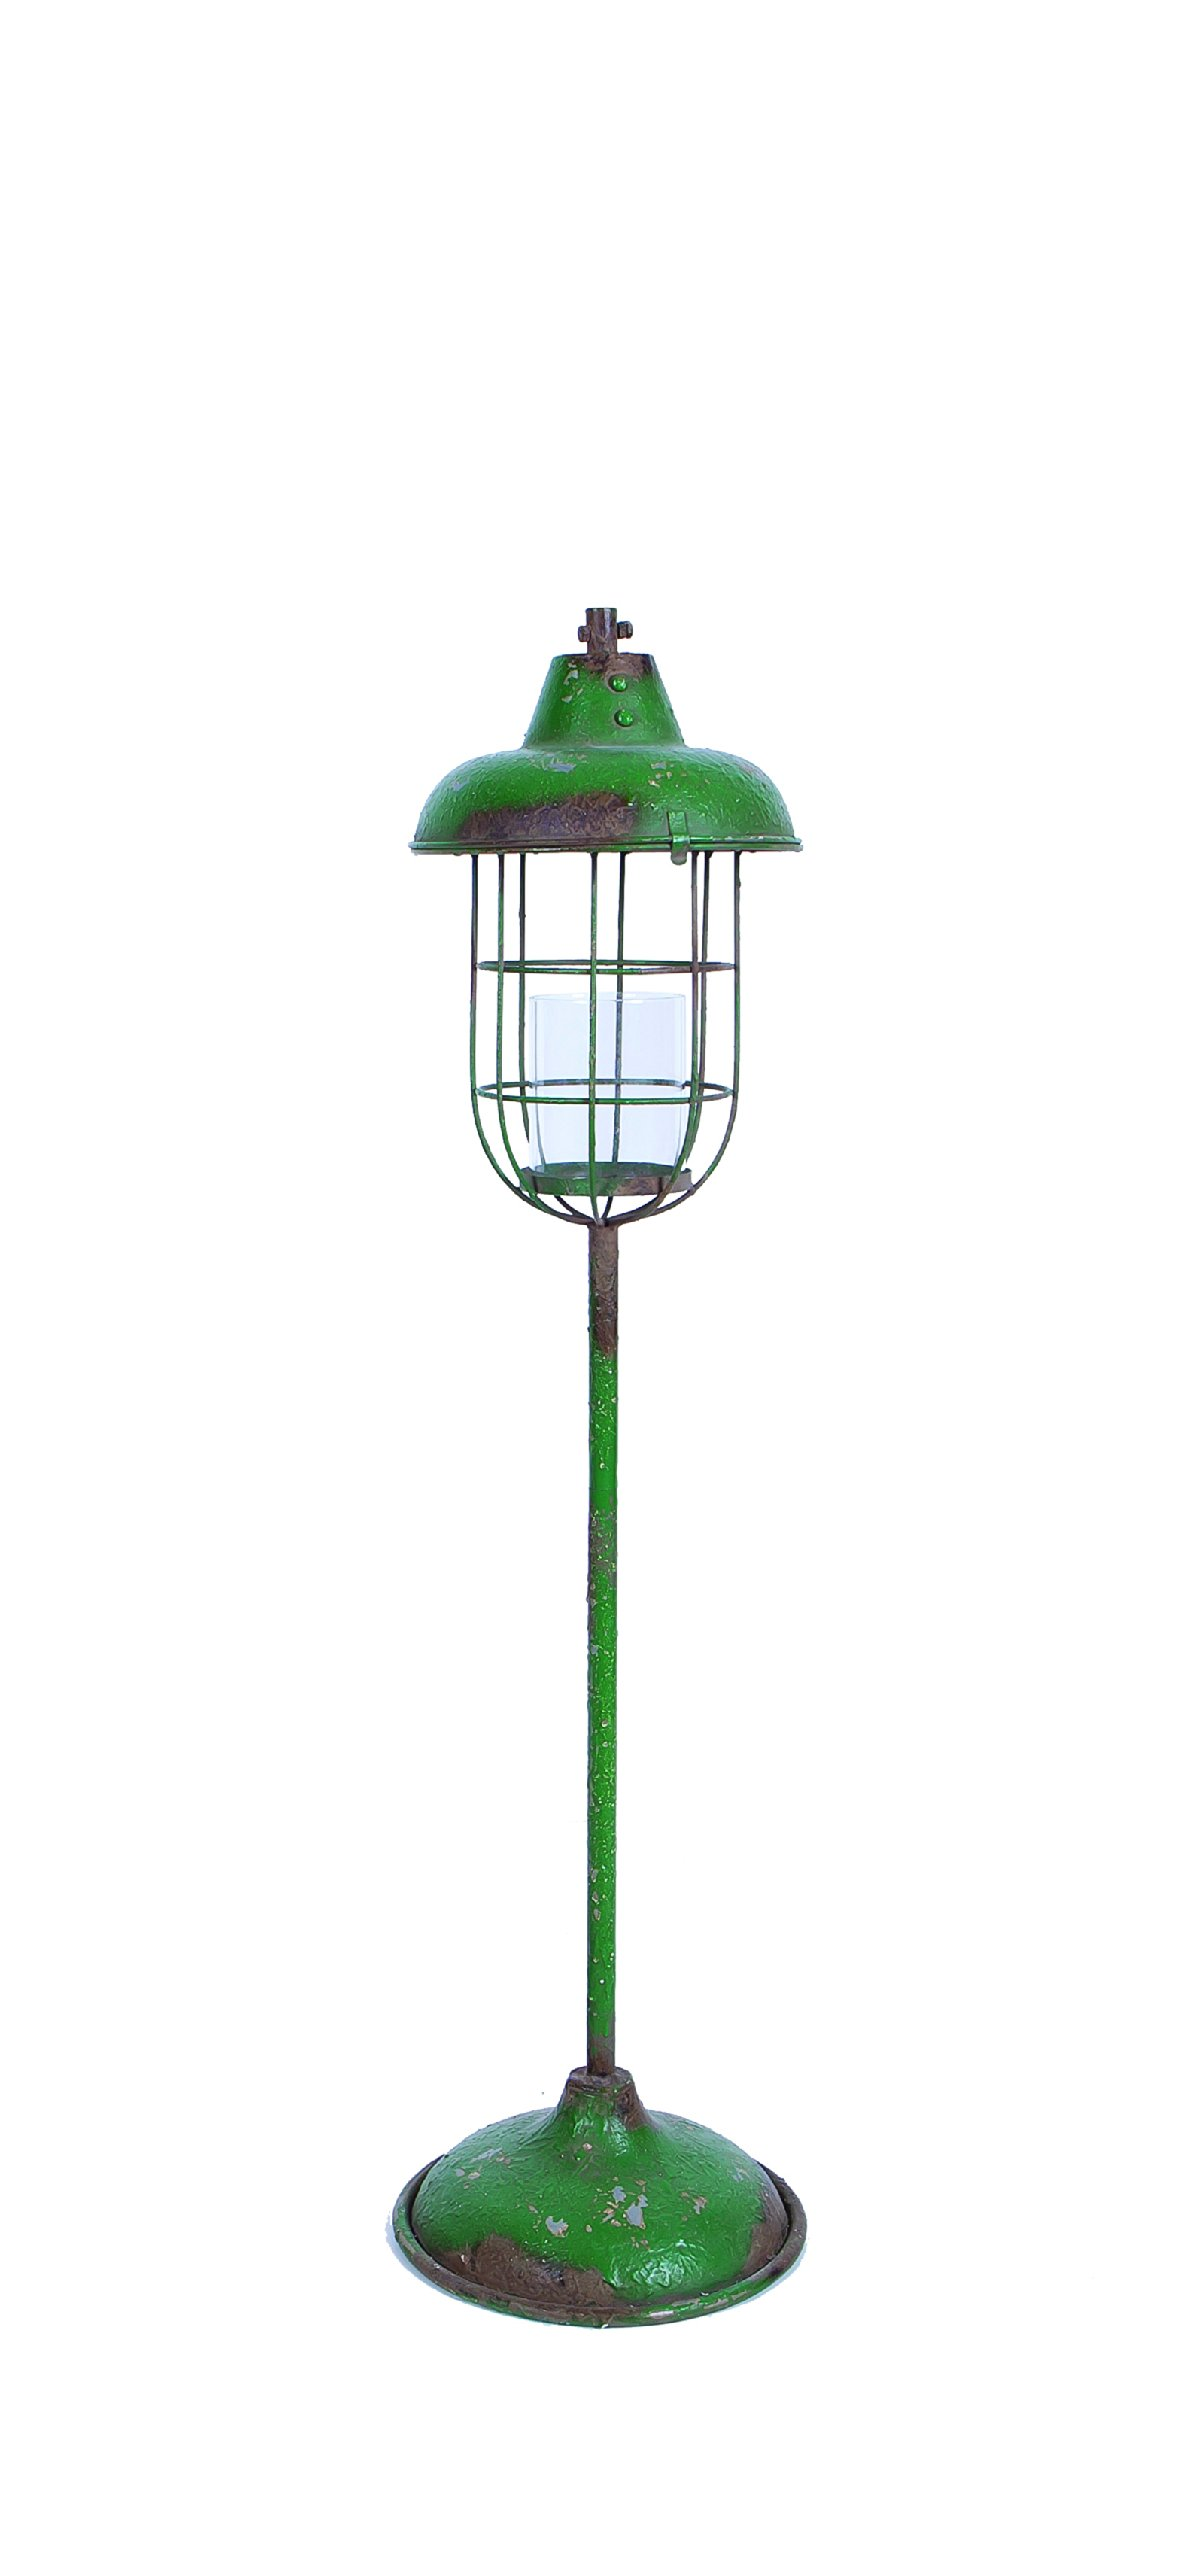 Creative Co-op Small Green Metal Lantern Candle Holder on Stand